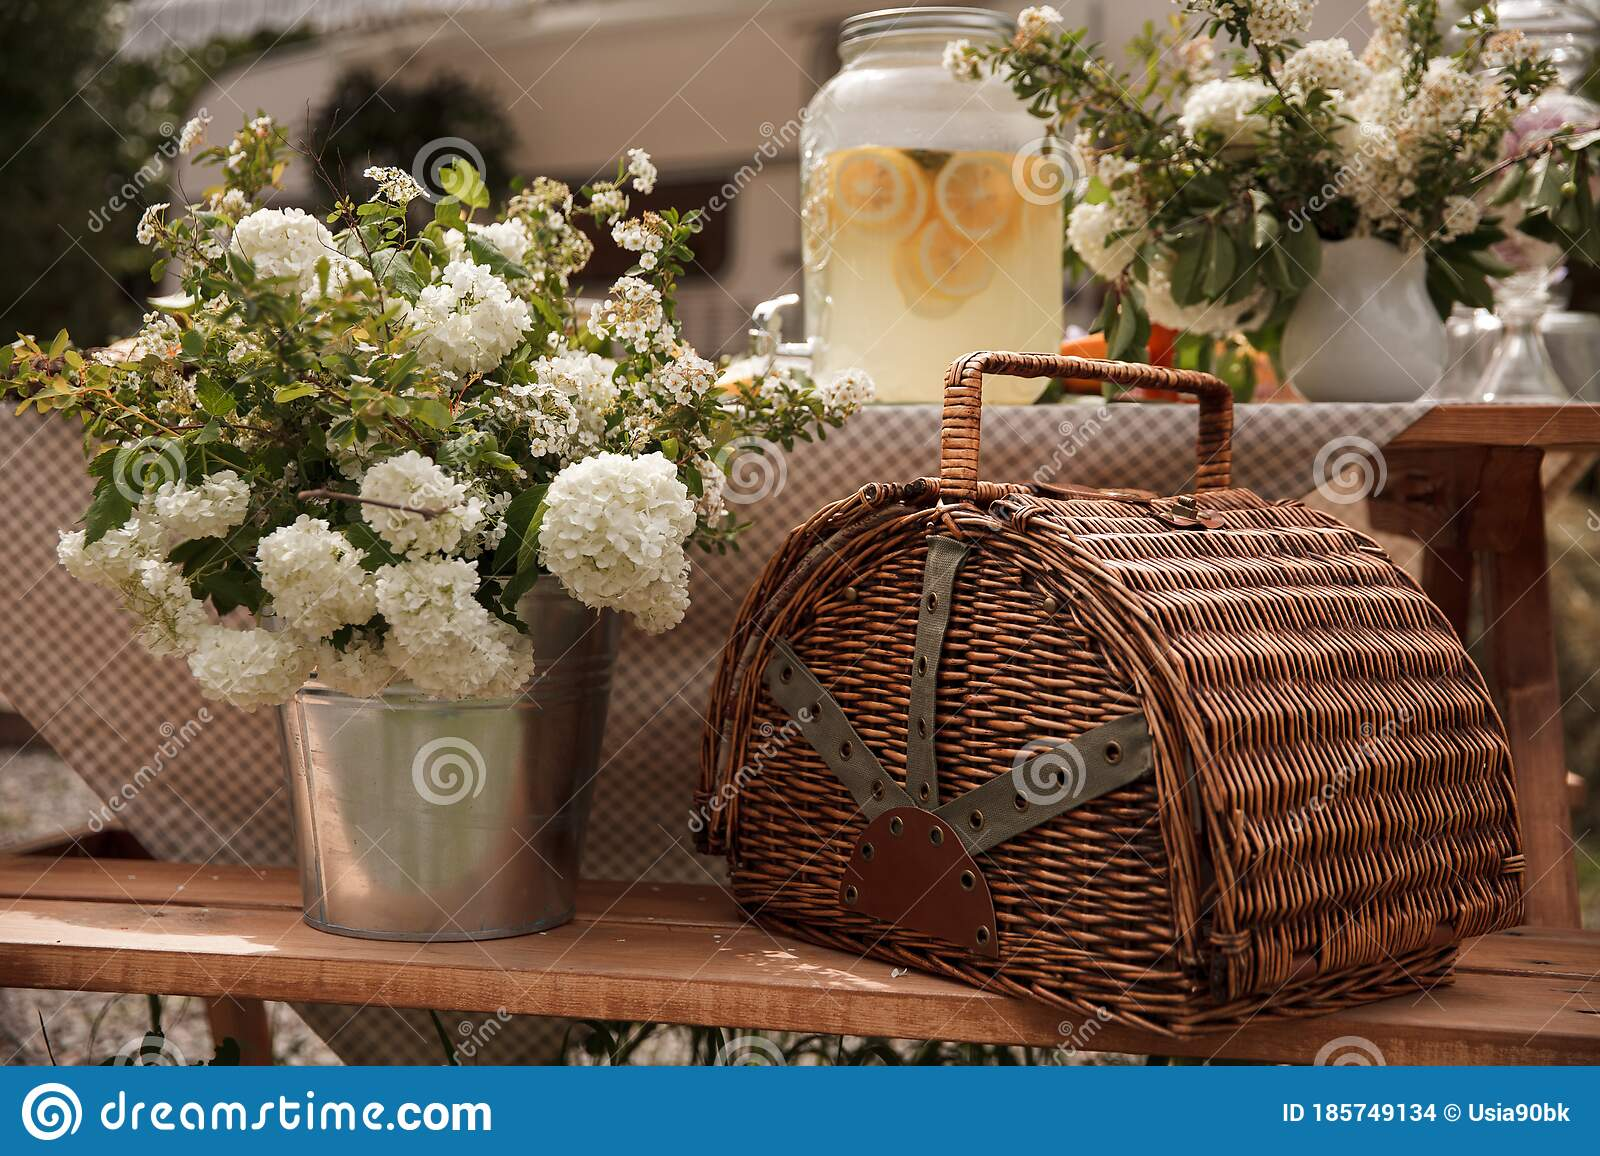 Picnic Basket With Fruits Picnic In The Nature White Flowers In A Pot Stock Photo Image Of Decoration Floral 185749134